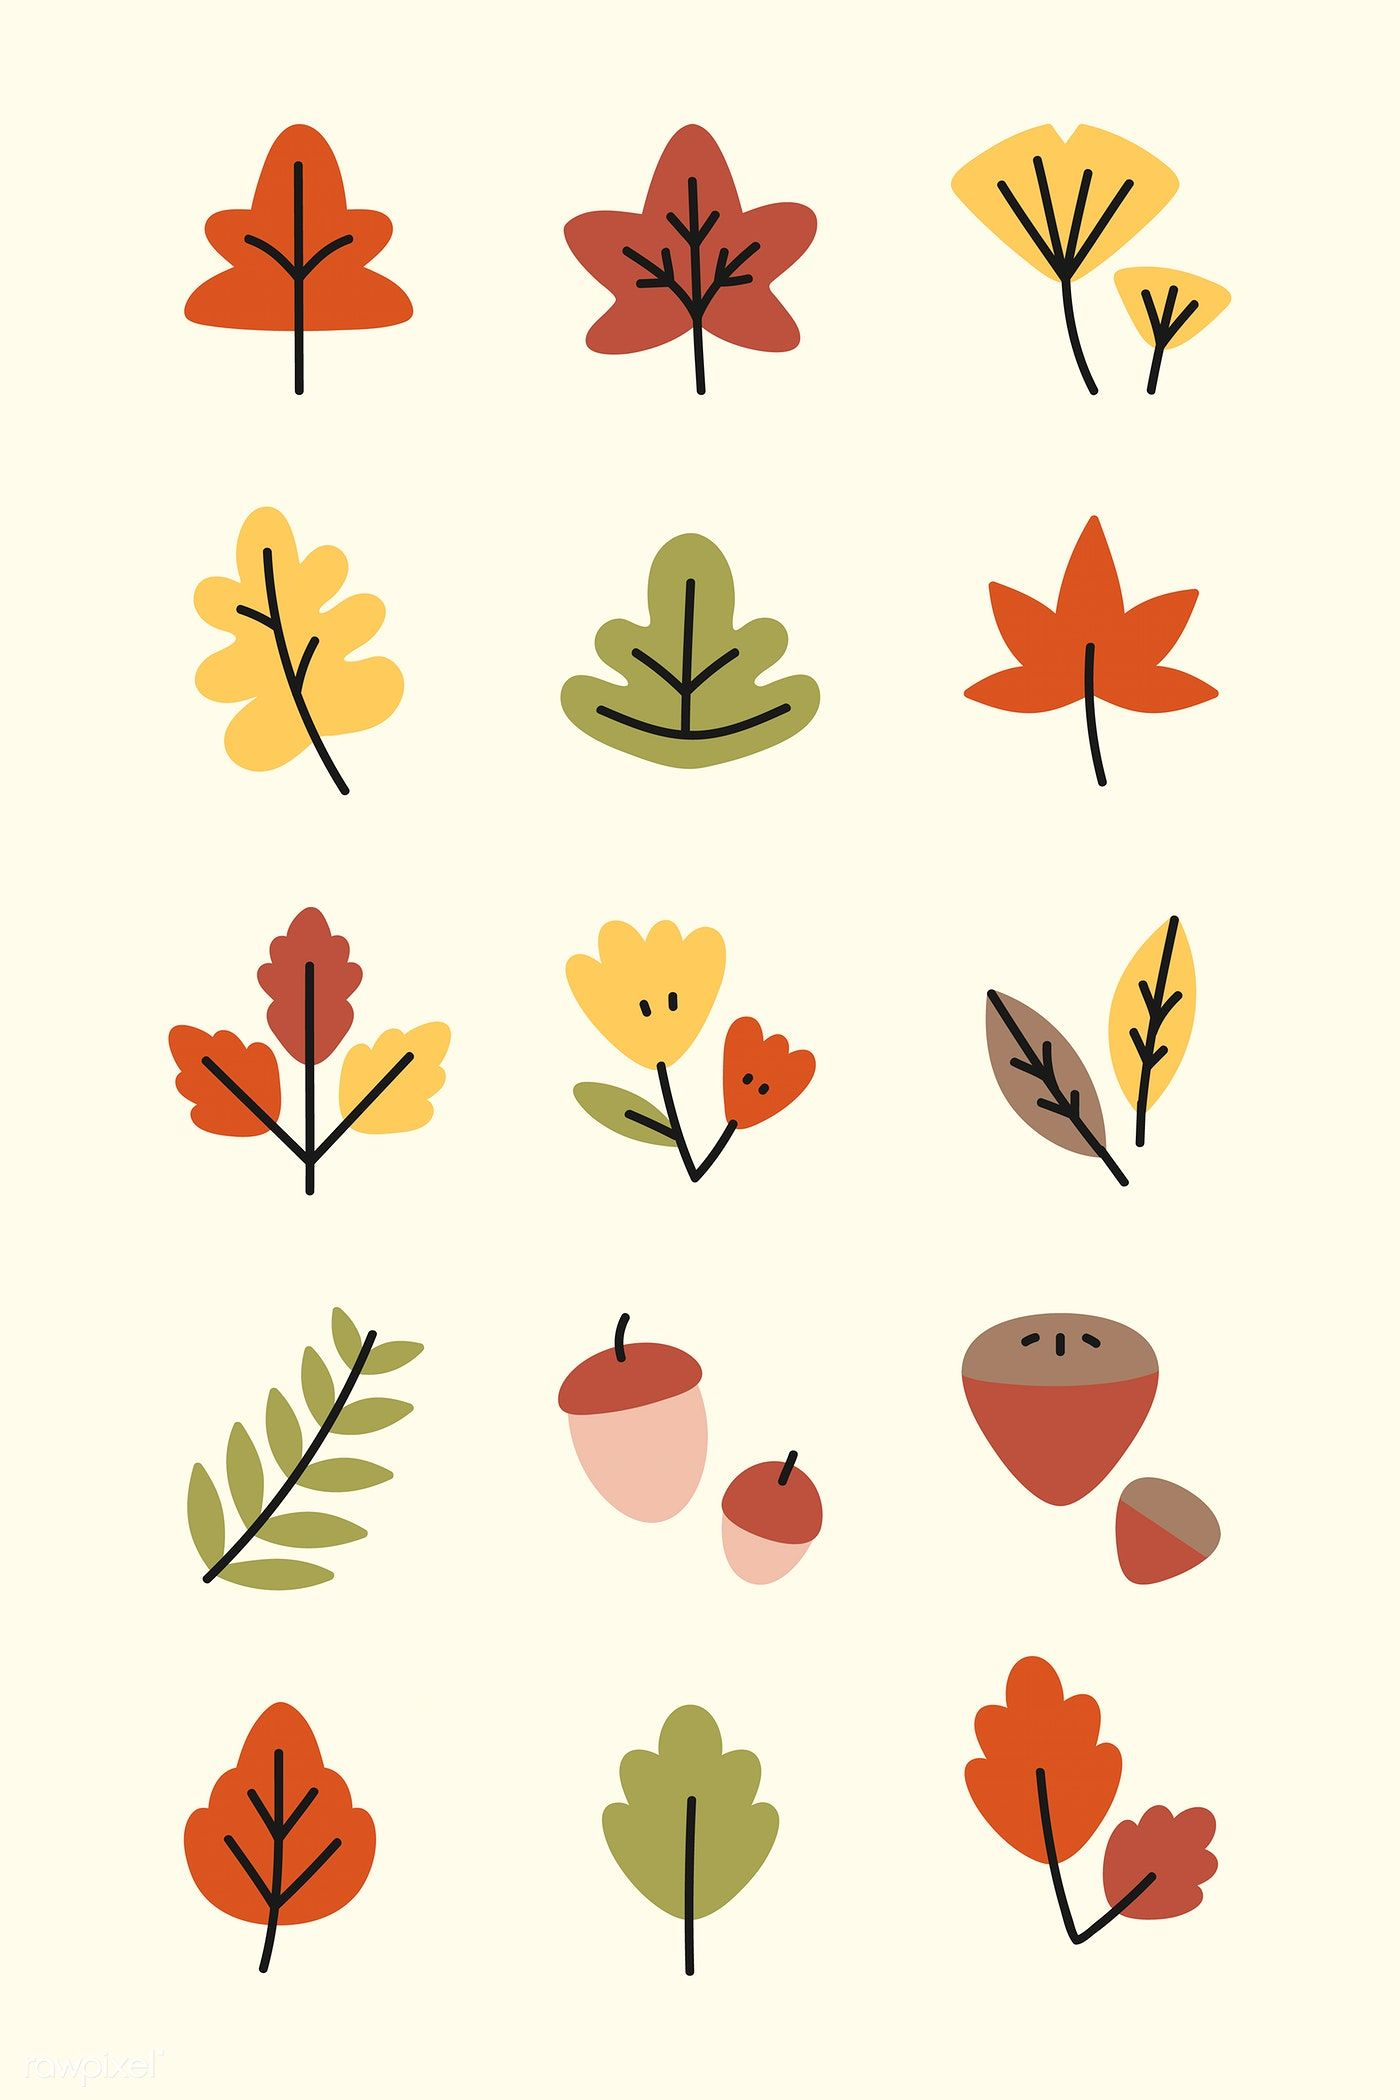 Colorful Autumn Leaves Vector Collection Free Image By Rawpixel Com Katie Moir Leaf Drawing Mini Drawings Leaves Vector